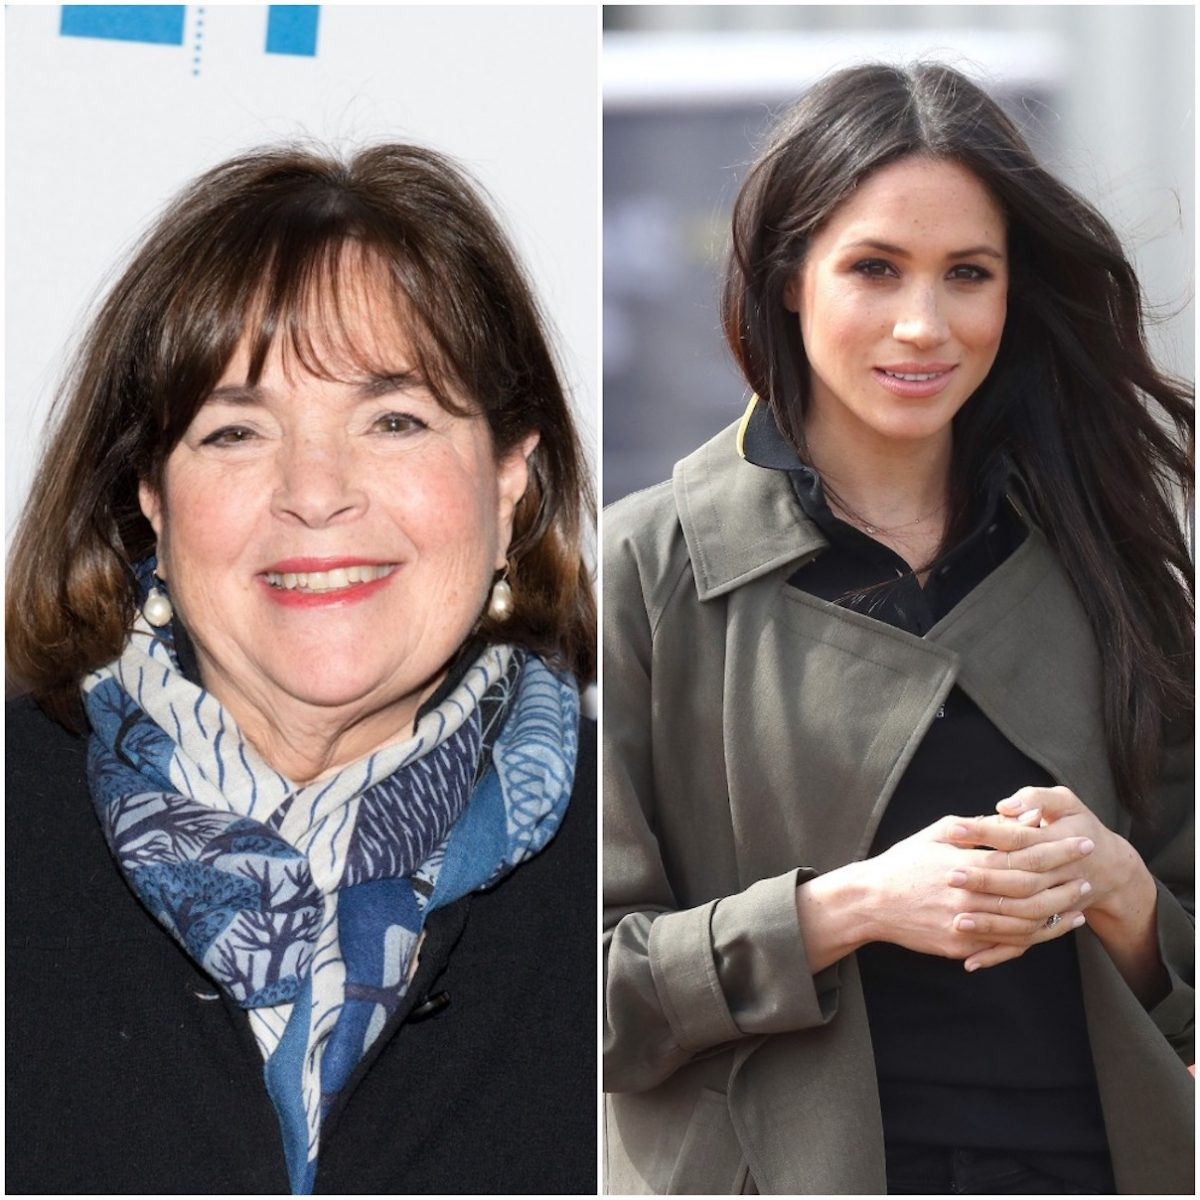 (L-R) Ina Garten in 2017 and Meghan Markle in 2018